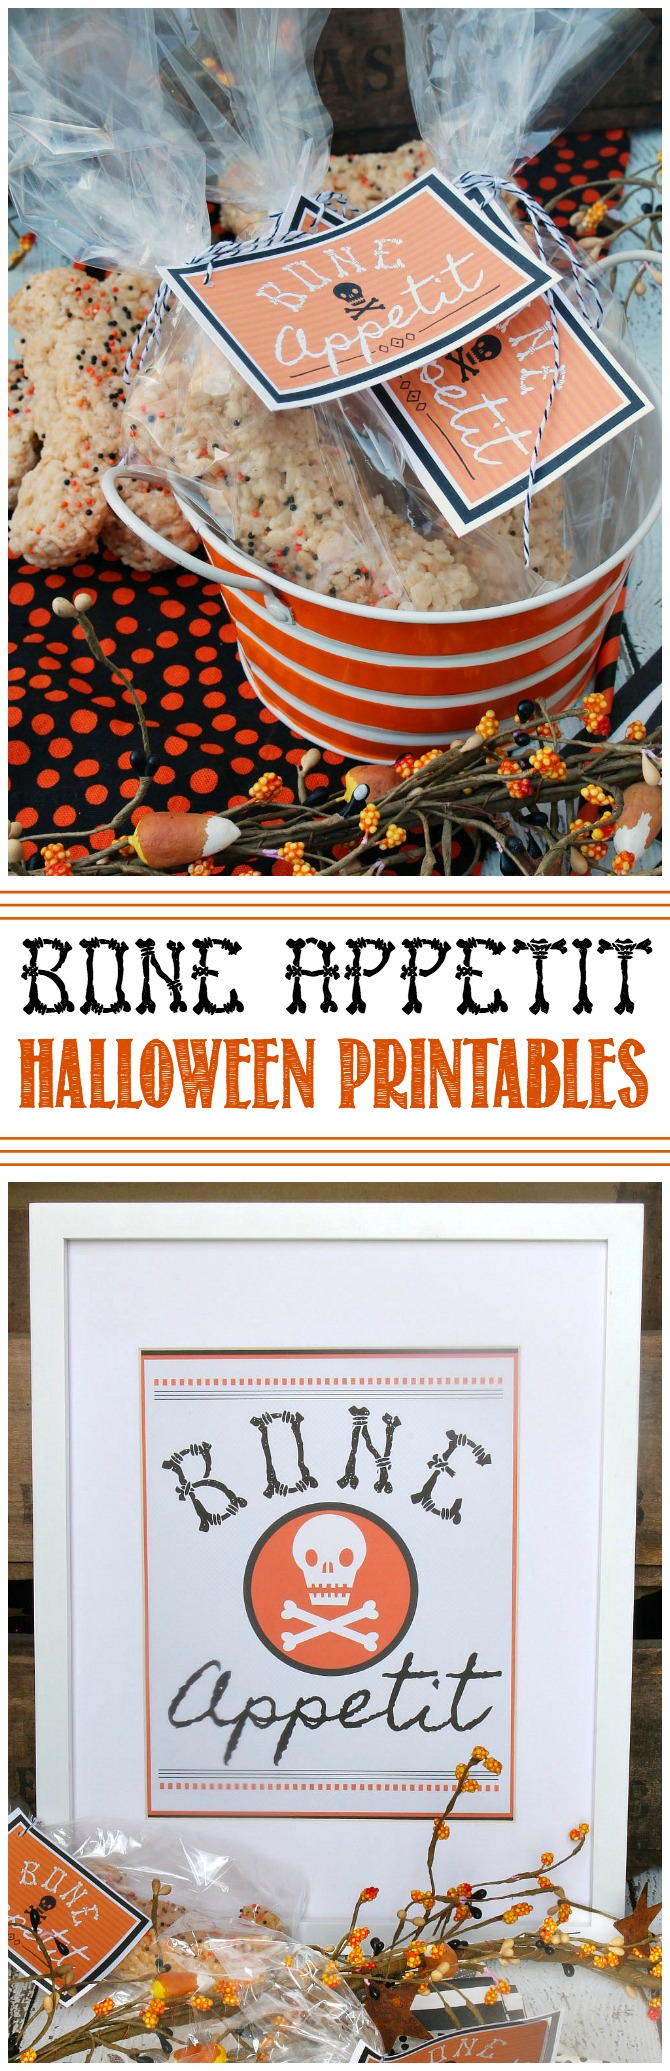 Bone Appetit. Free Halloween printables including treat tags, labels, and wall art. Perfect to decorate you kitchen or dining room for Halloween!